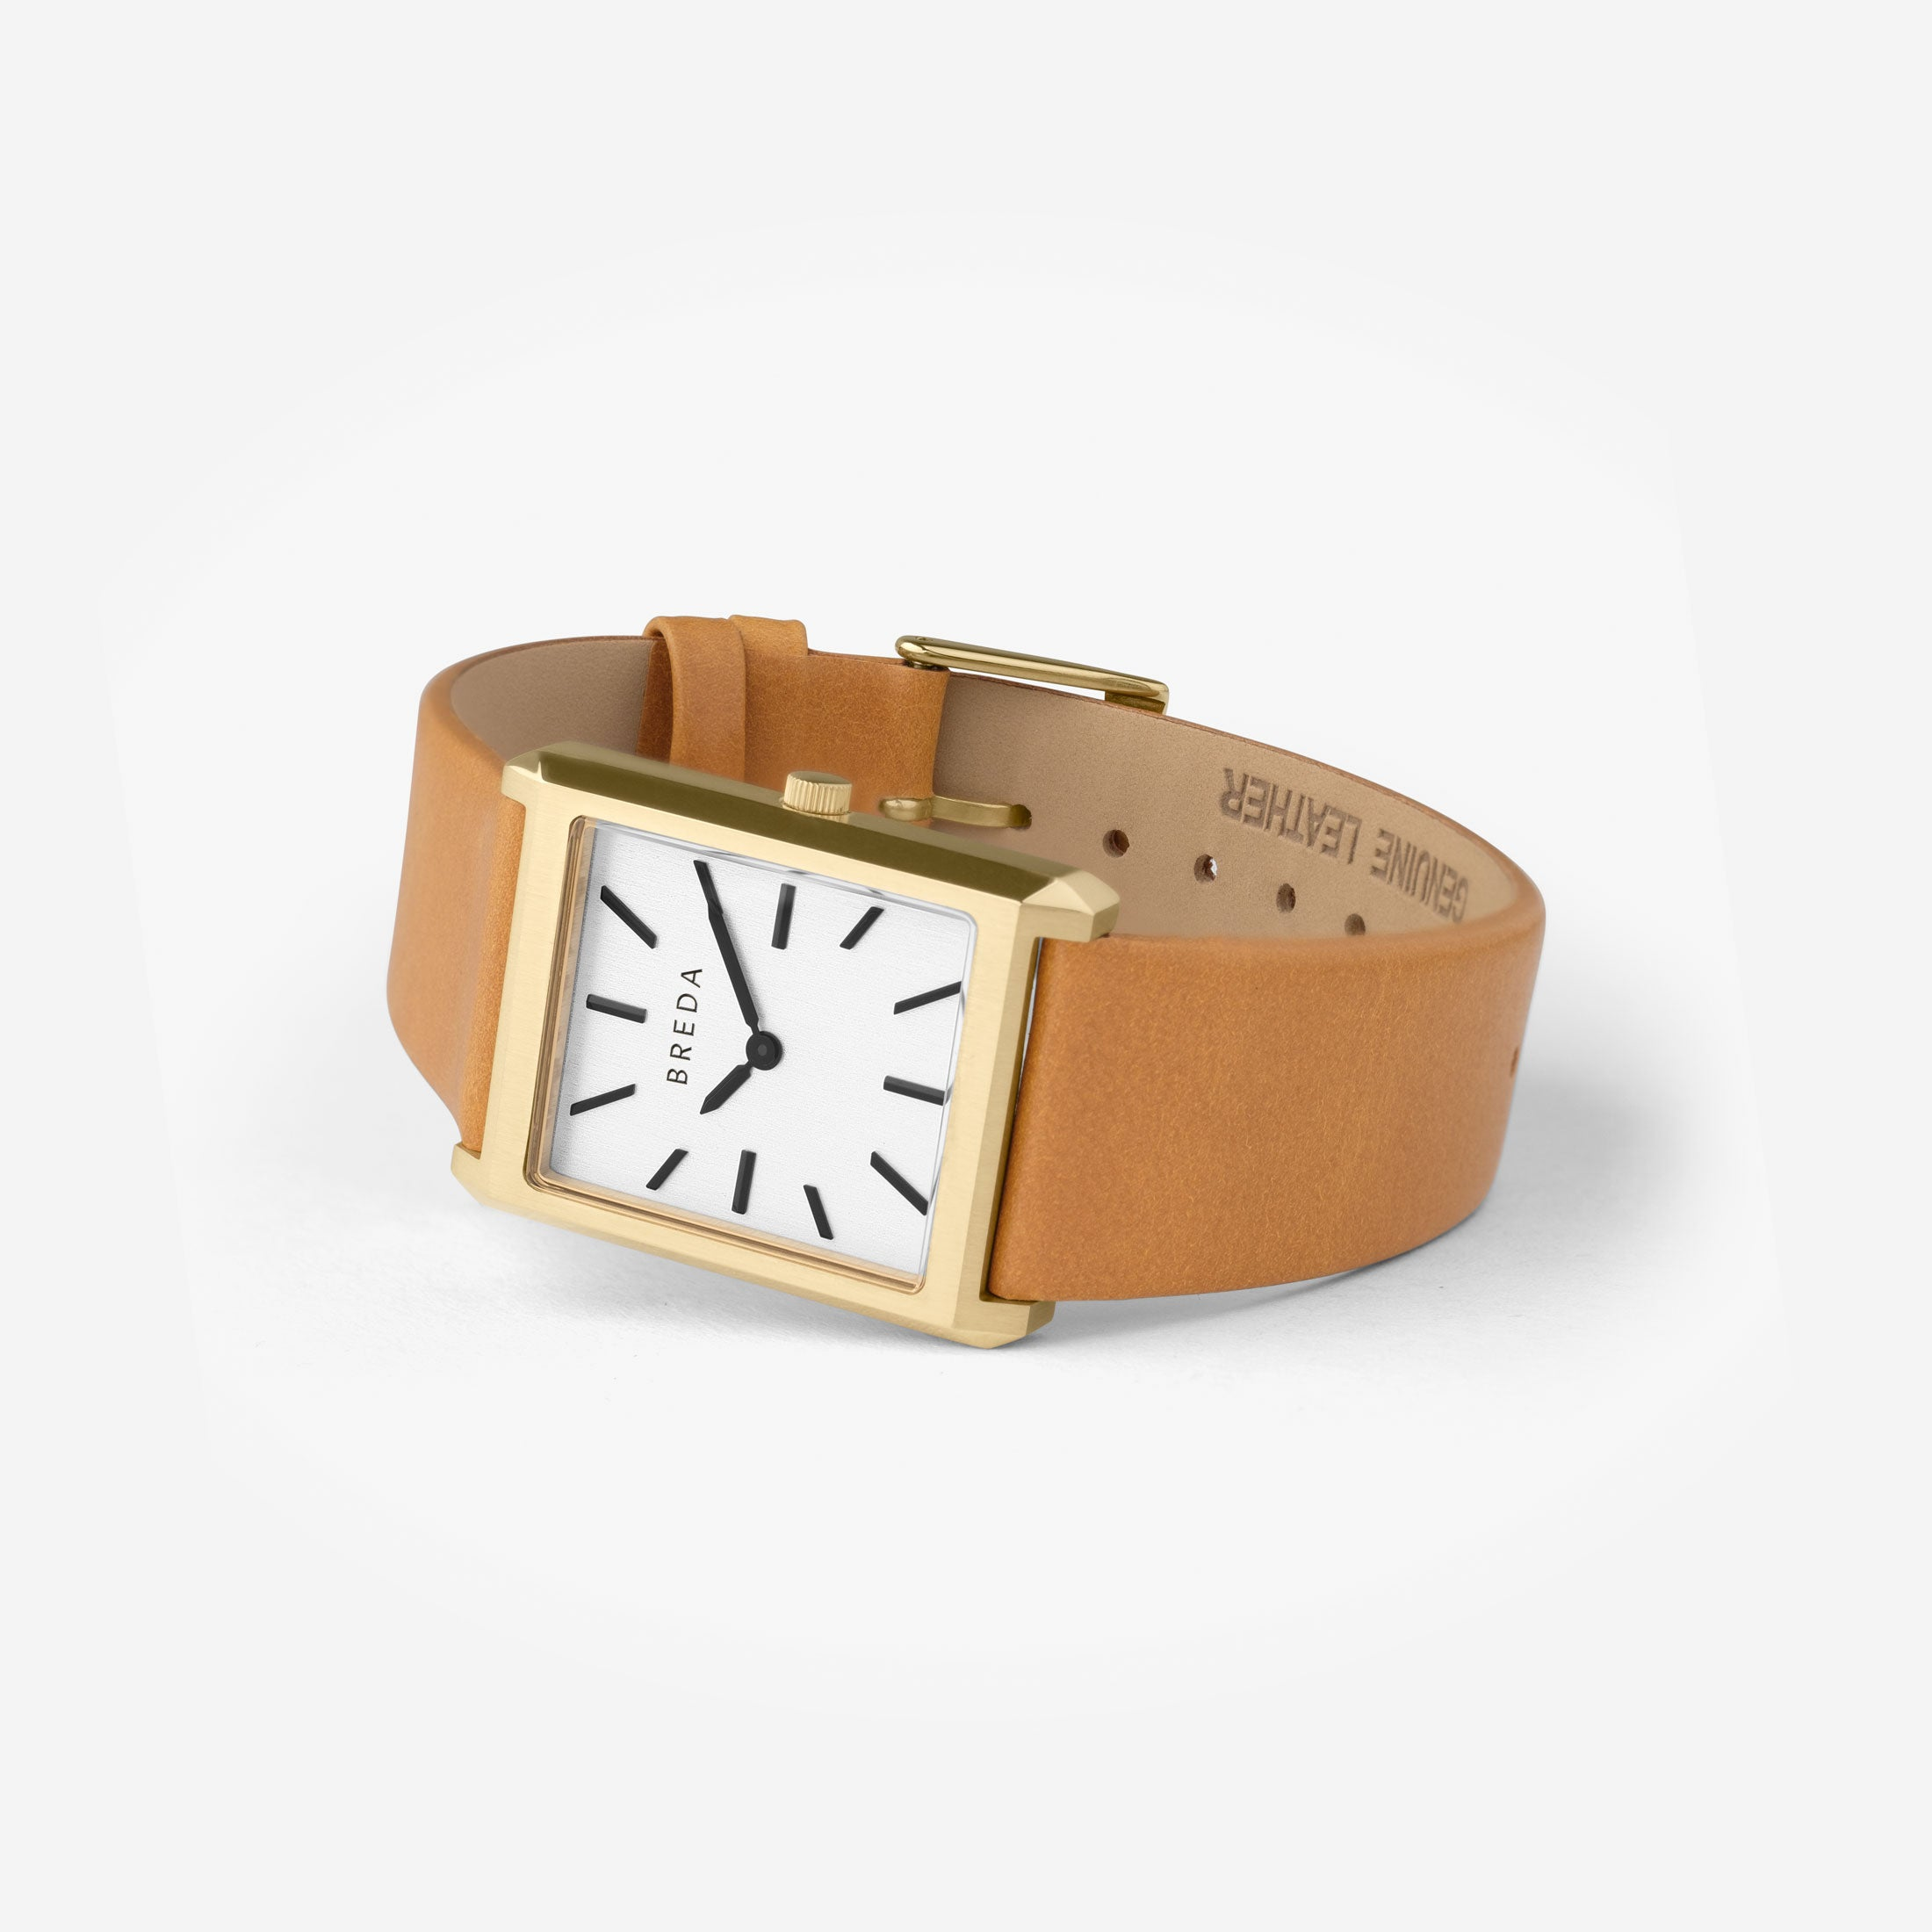 //cdn.shopify.com/s/files/1/0879/6650/products/breda-virgil-1736a-gold-brown-leather-watch-angle_1024x1024.jpg?v=1552323008